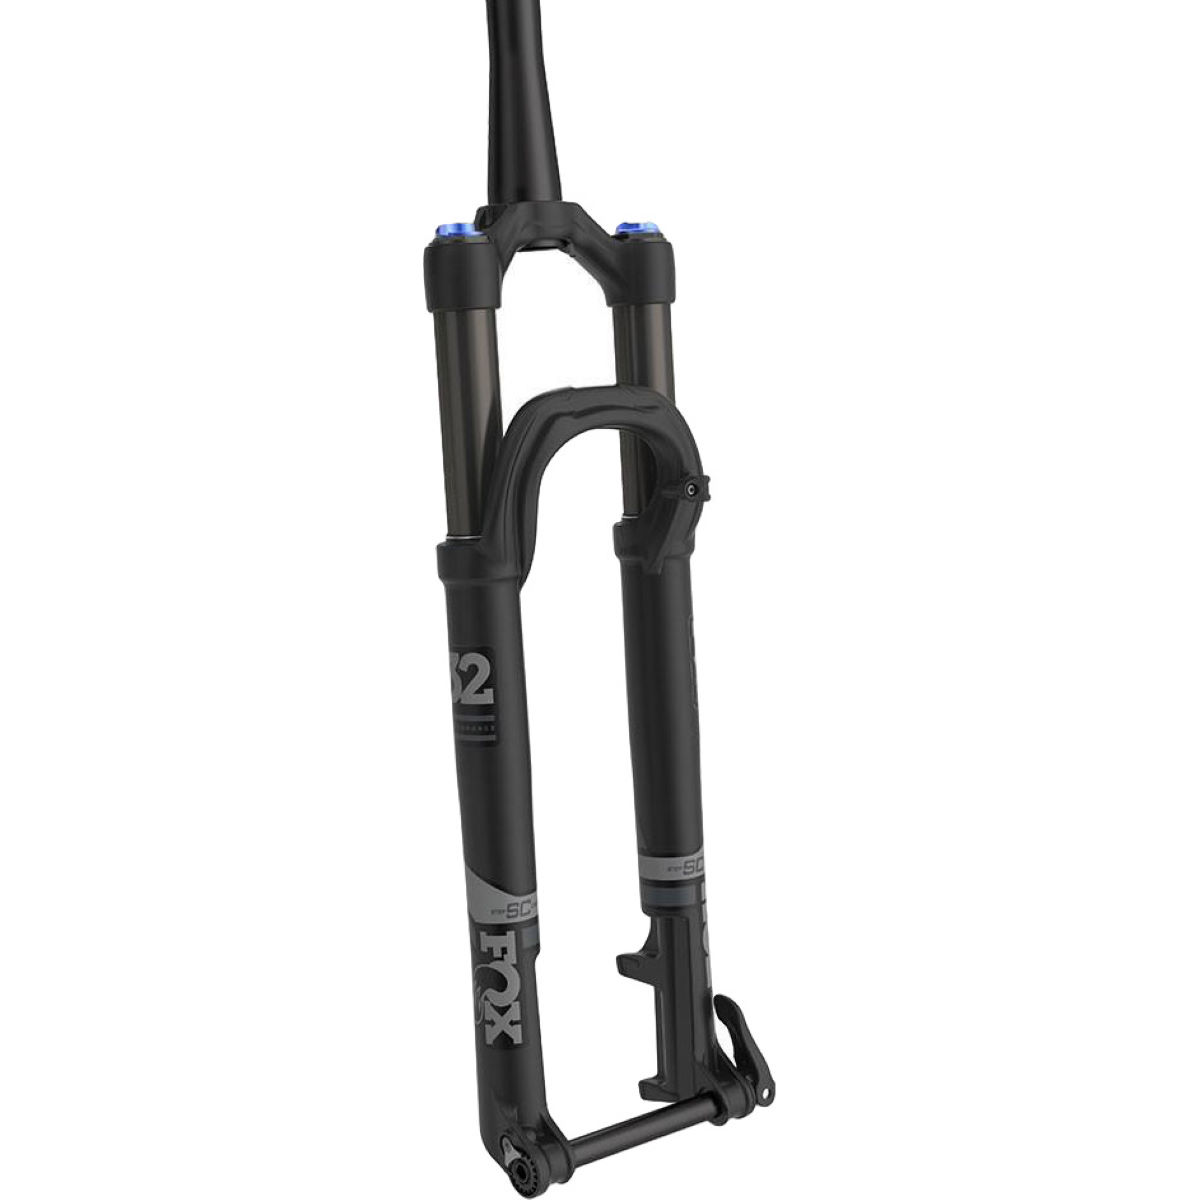 Fox Suspension 32 Float Performance Grip Fork BOOST - Amortiguadores traseros